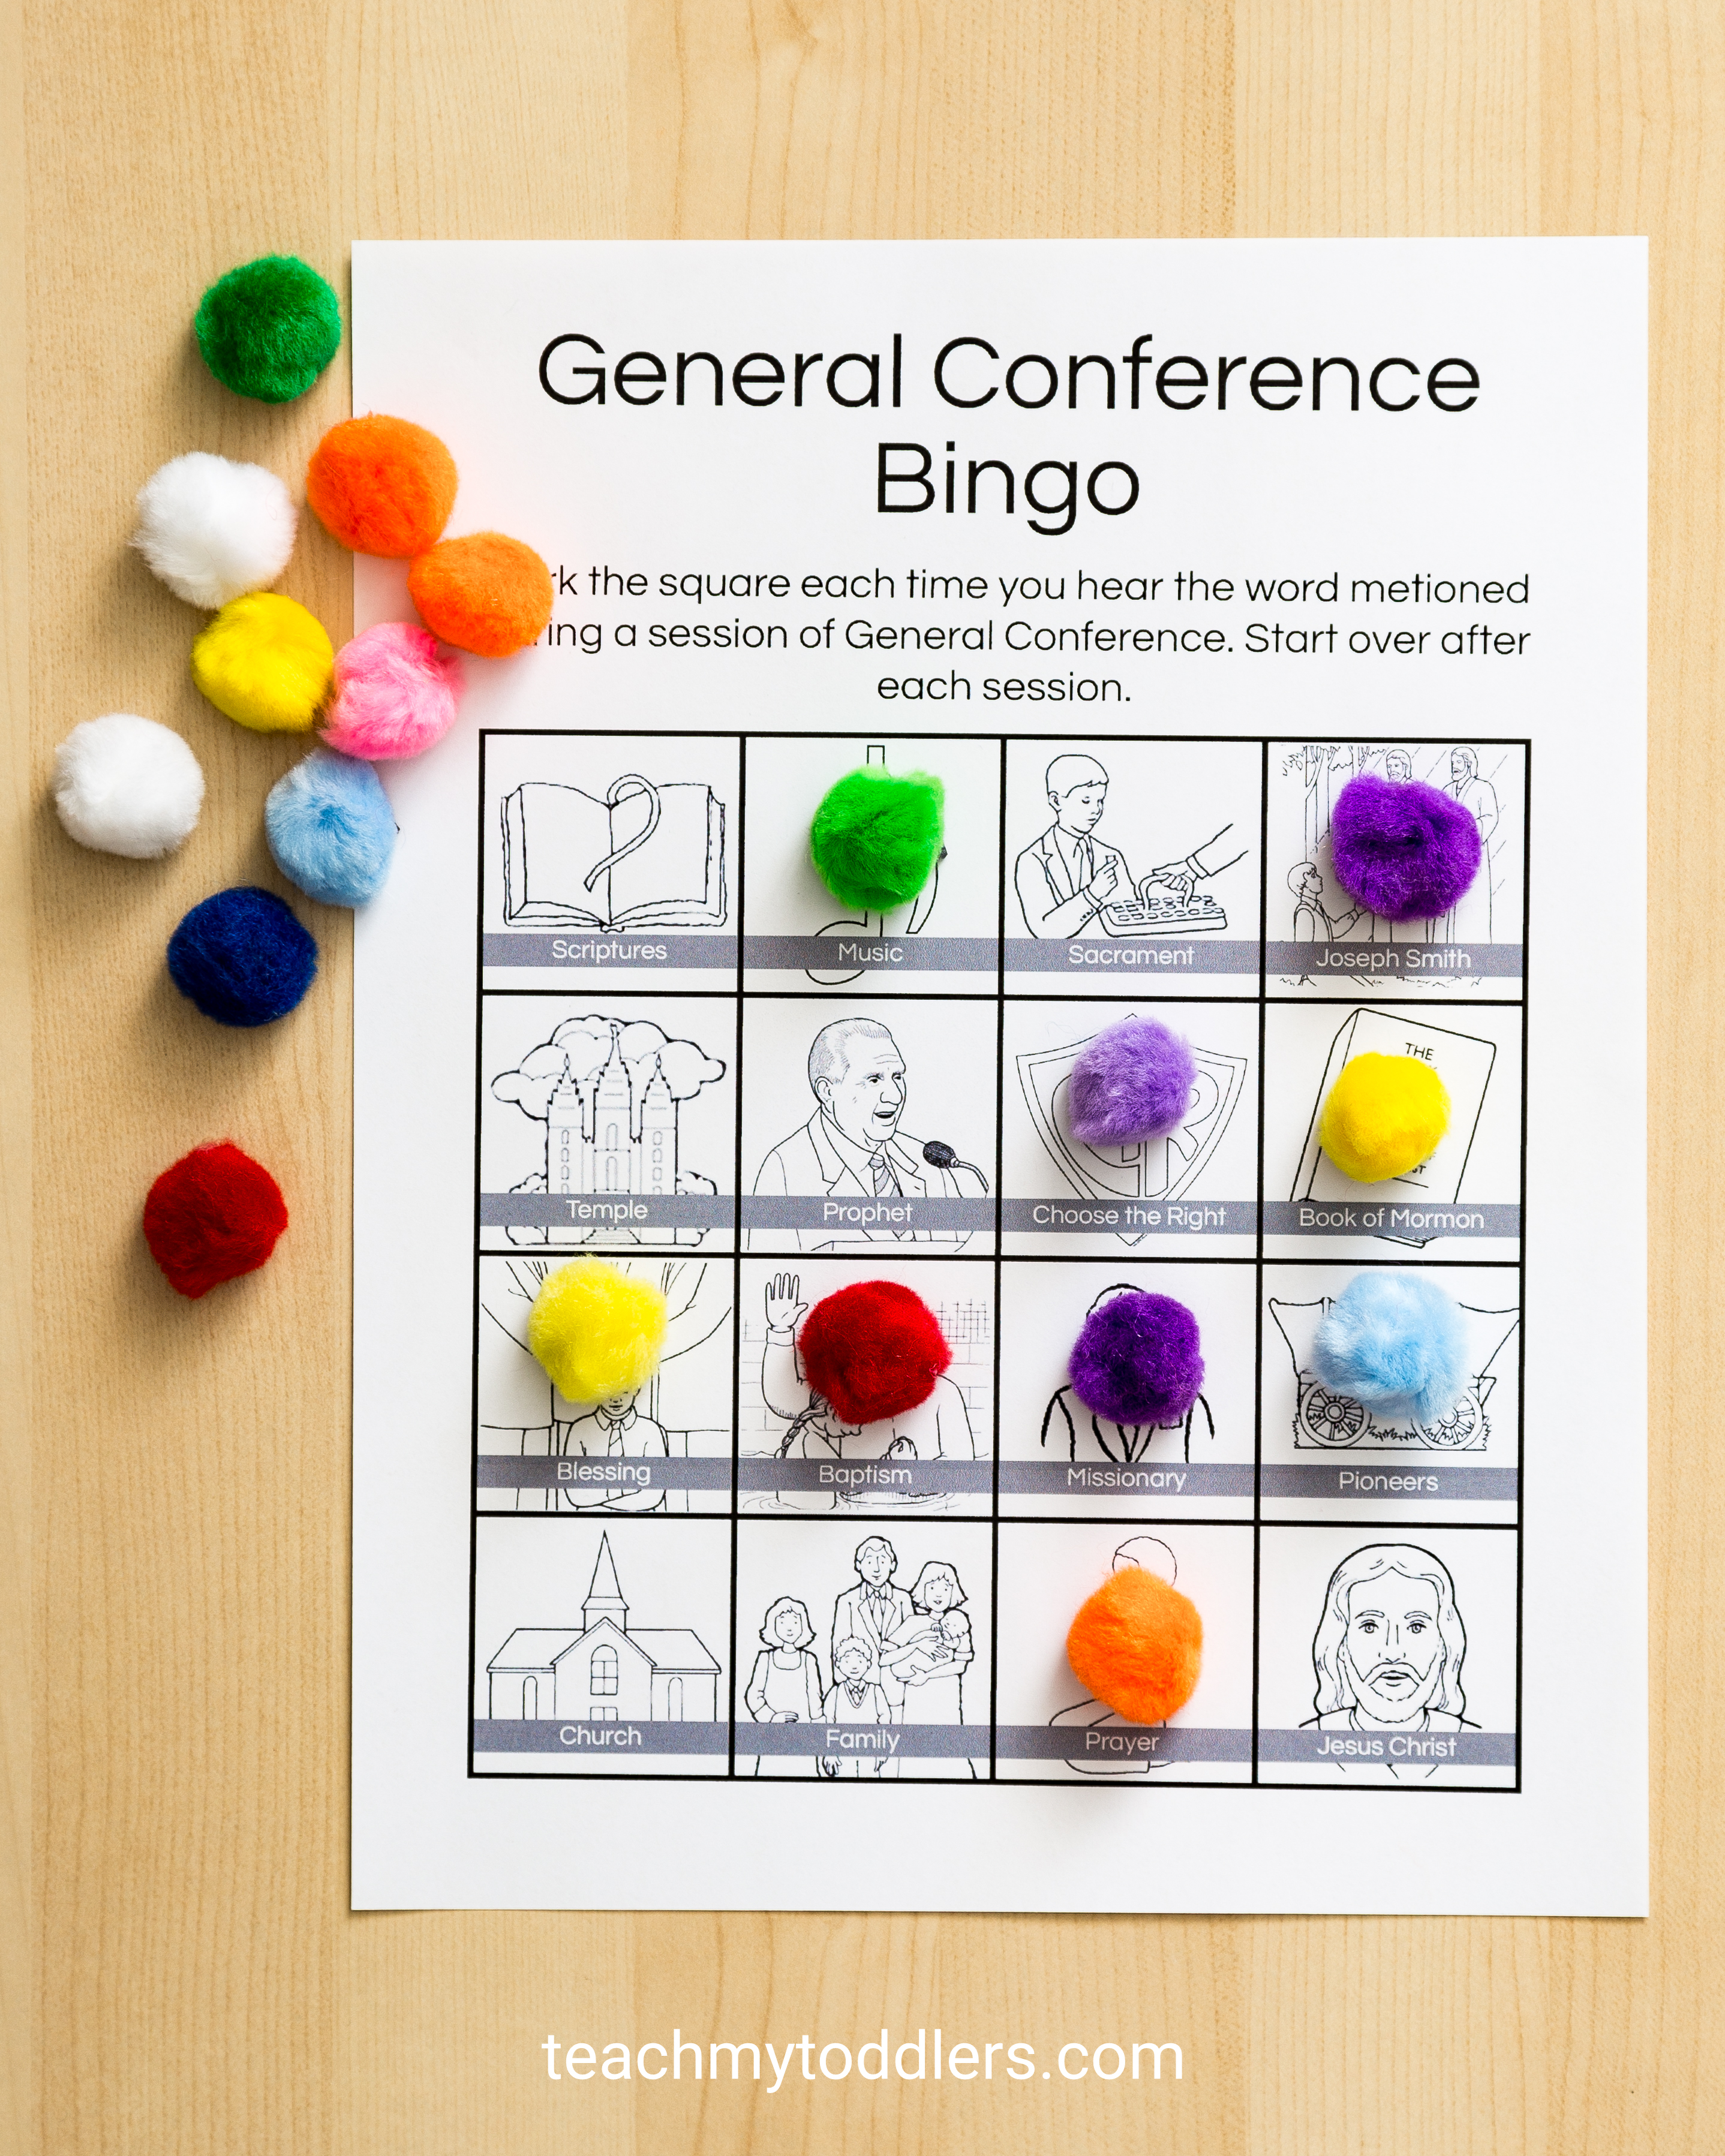 Check out these exciting bingo sheets general conference toddler activities